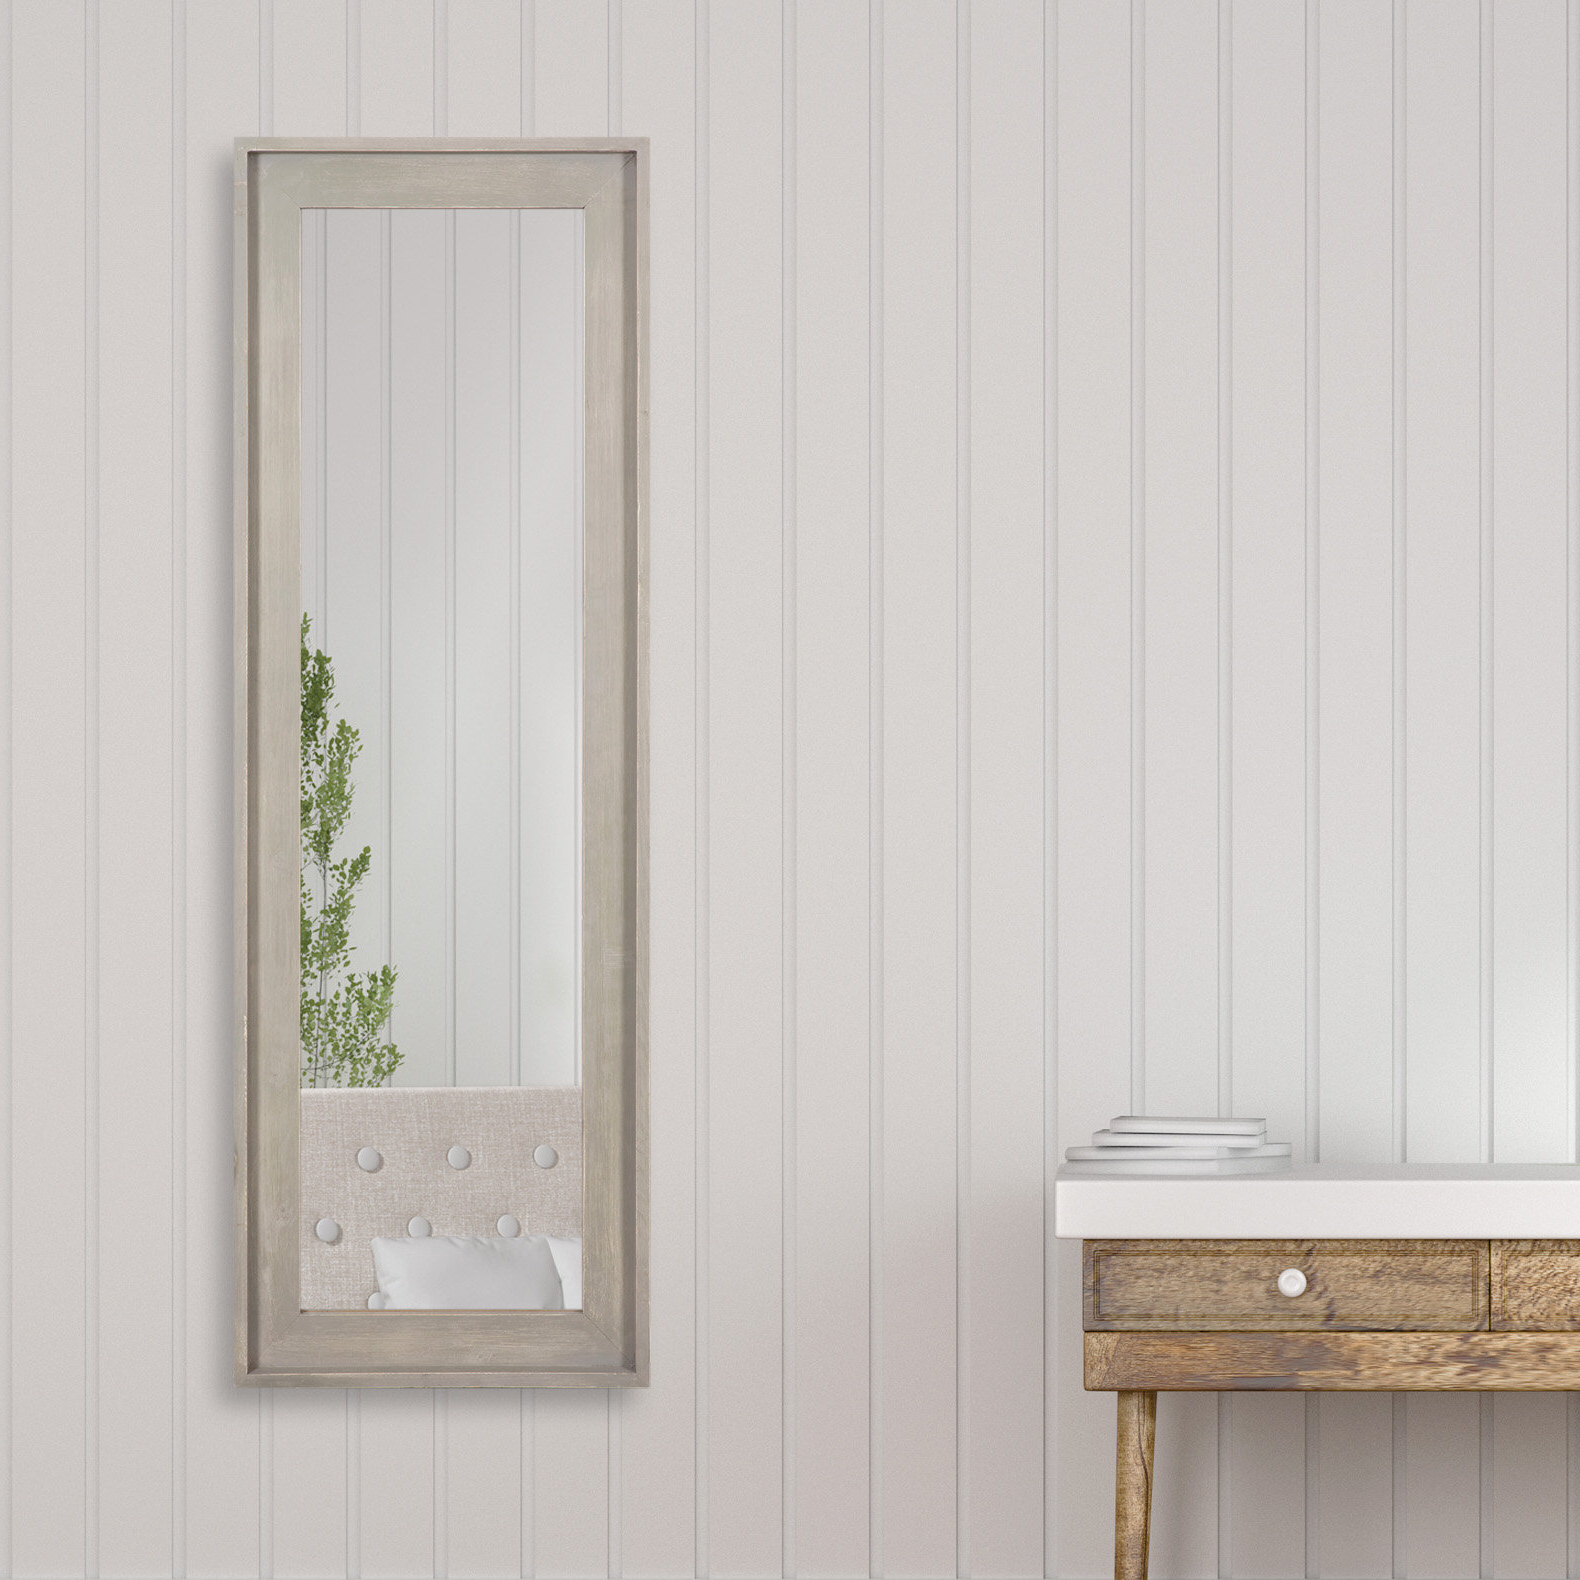 Padang Irregular Wood Framed Wall Mirrors Regarding 2019 Natural Wood Frame Mirror (View 15 of 20)